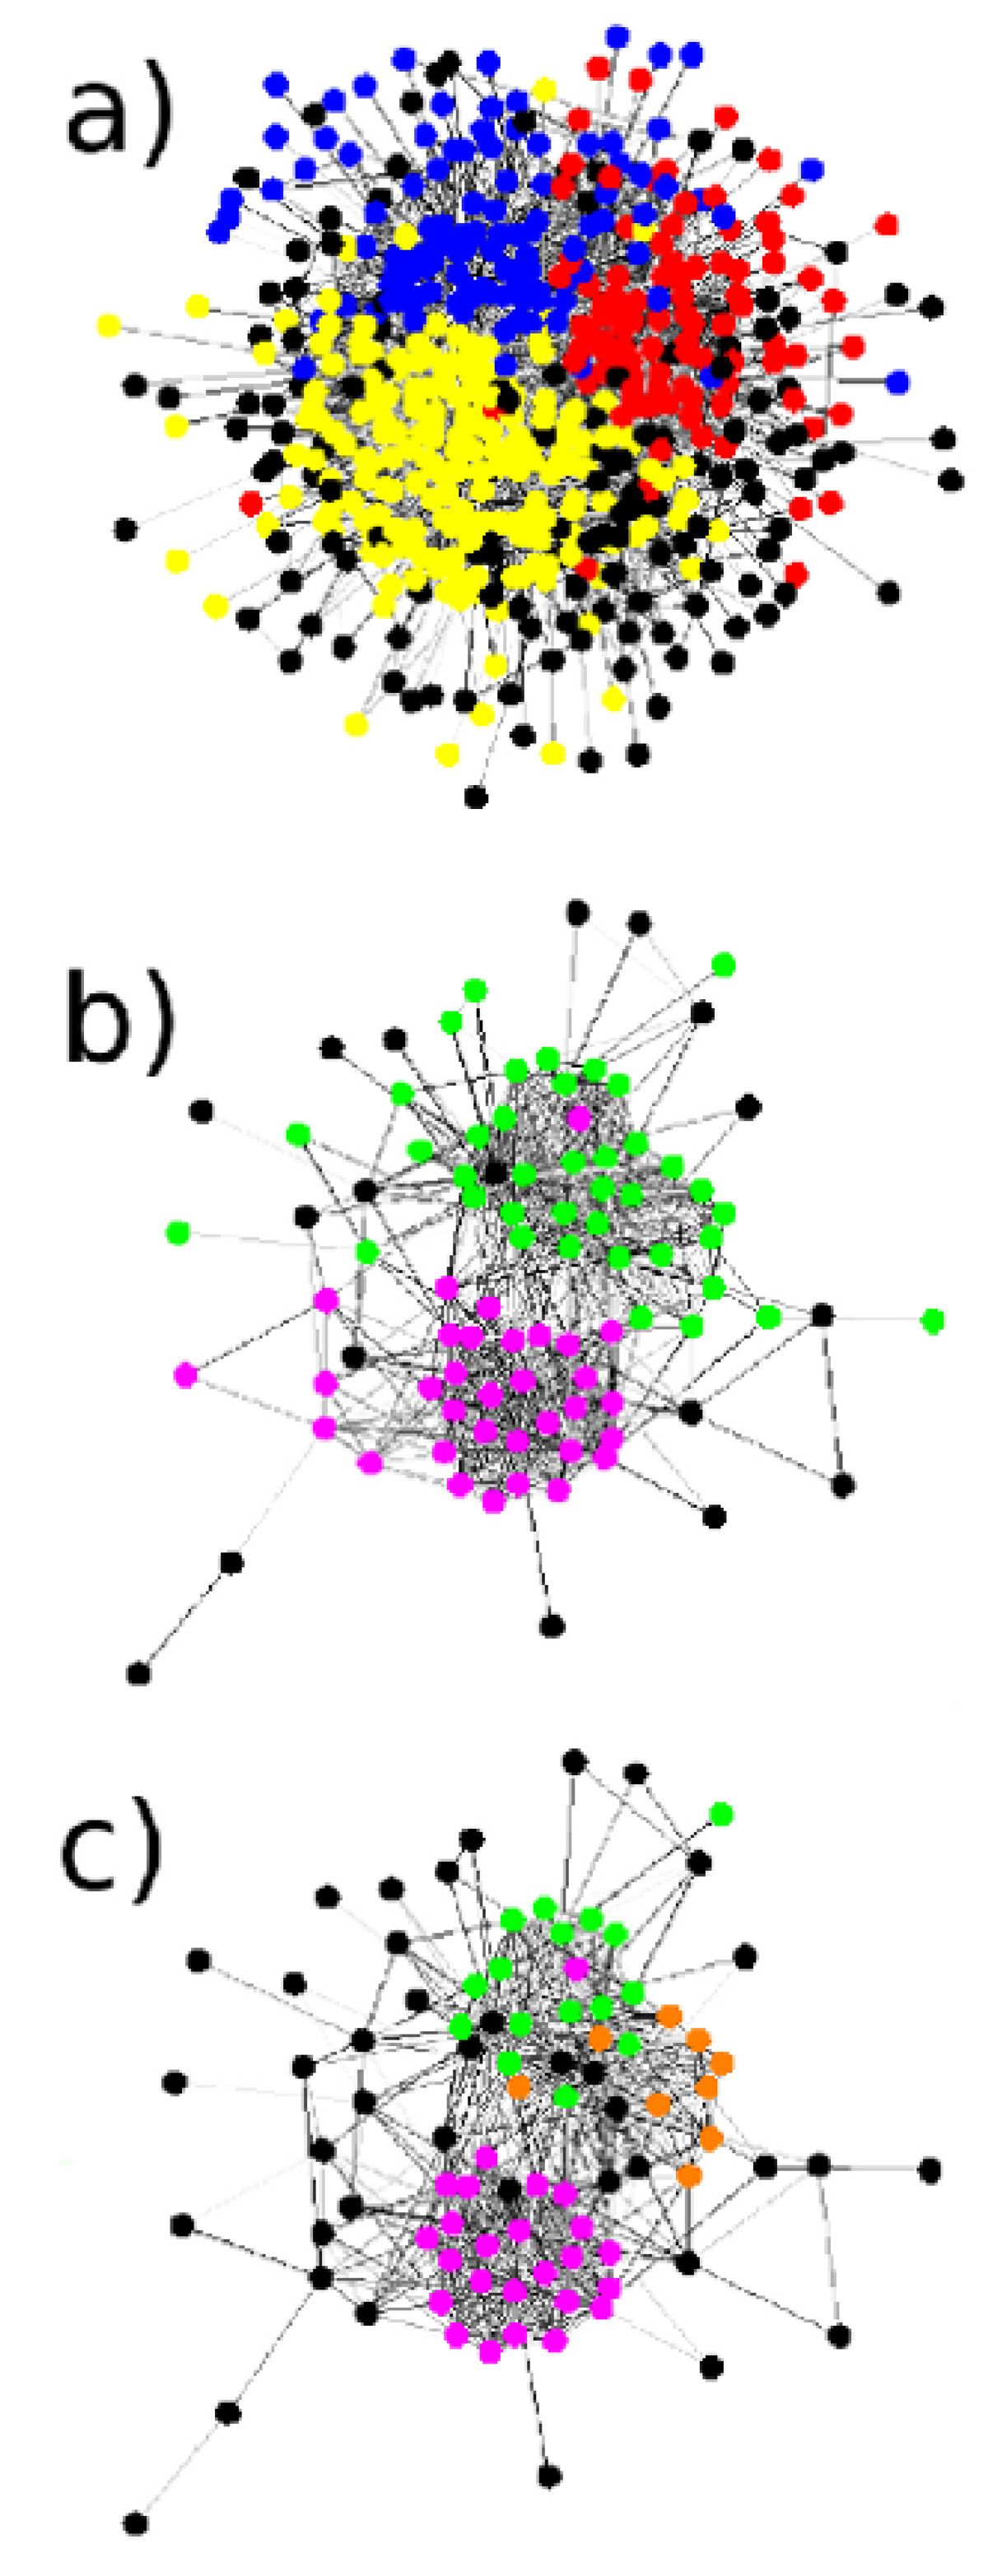 http://static-content.springer.com/image/art%3A10.1186%2F1752-0509-4-100/MediaObjects/12918_2010_Article_489_Fig4_HTML.jpg